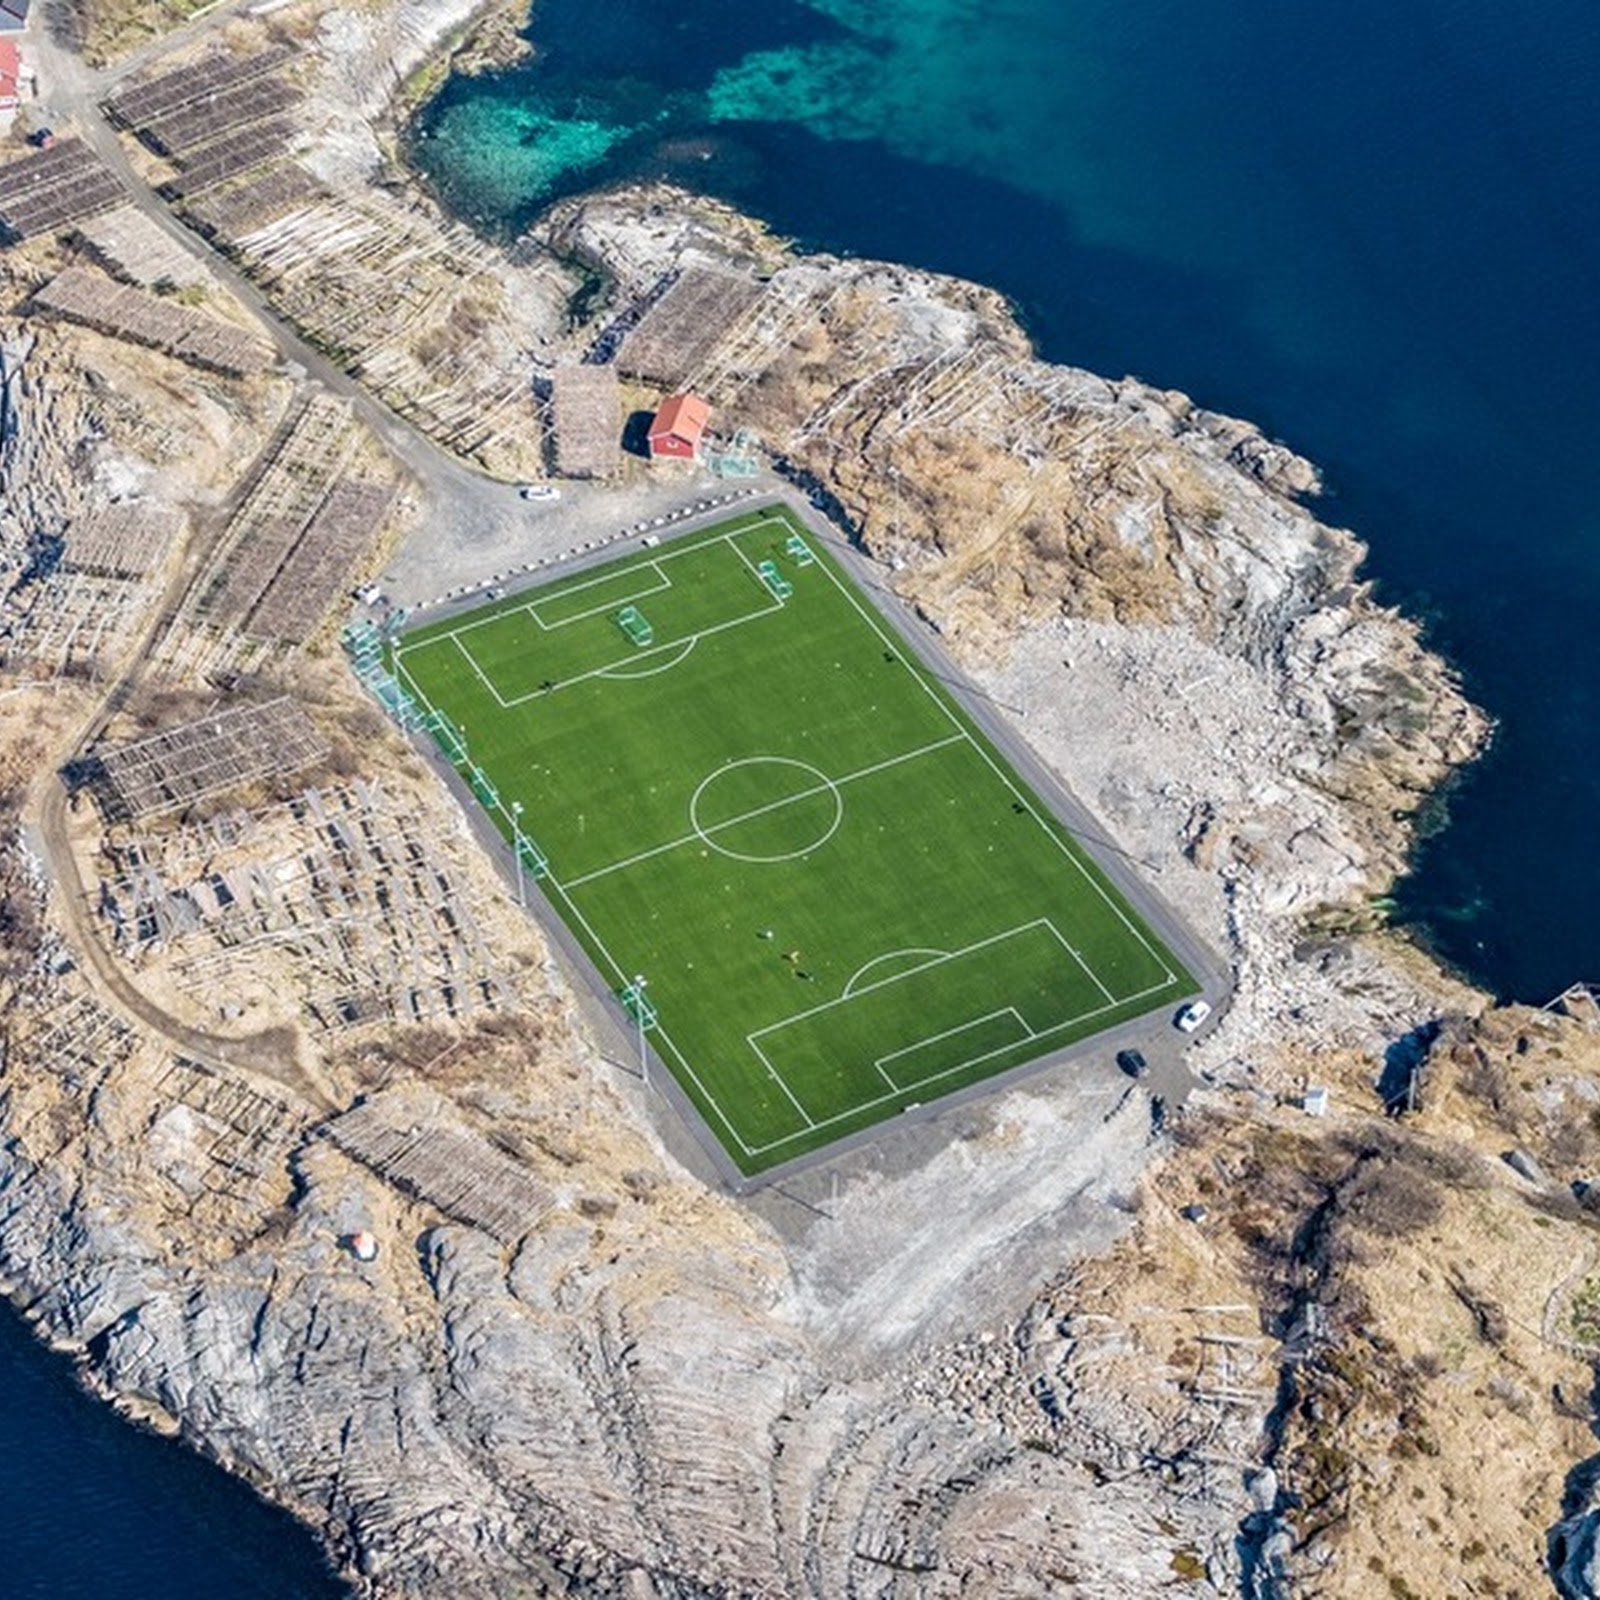 This Football Stadium in Henningsvær